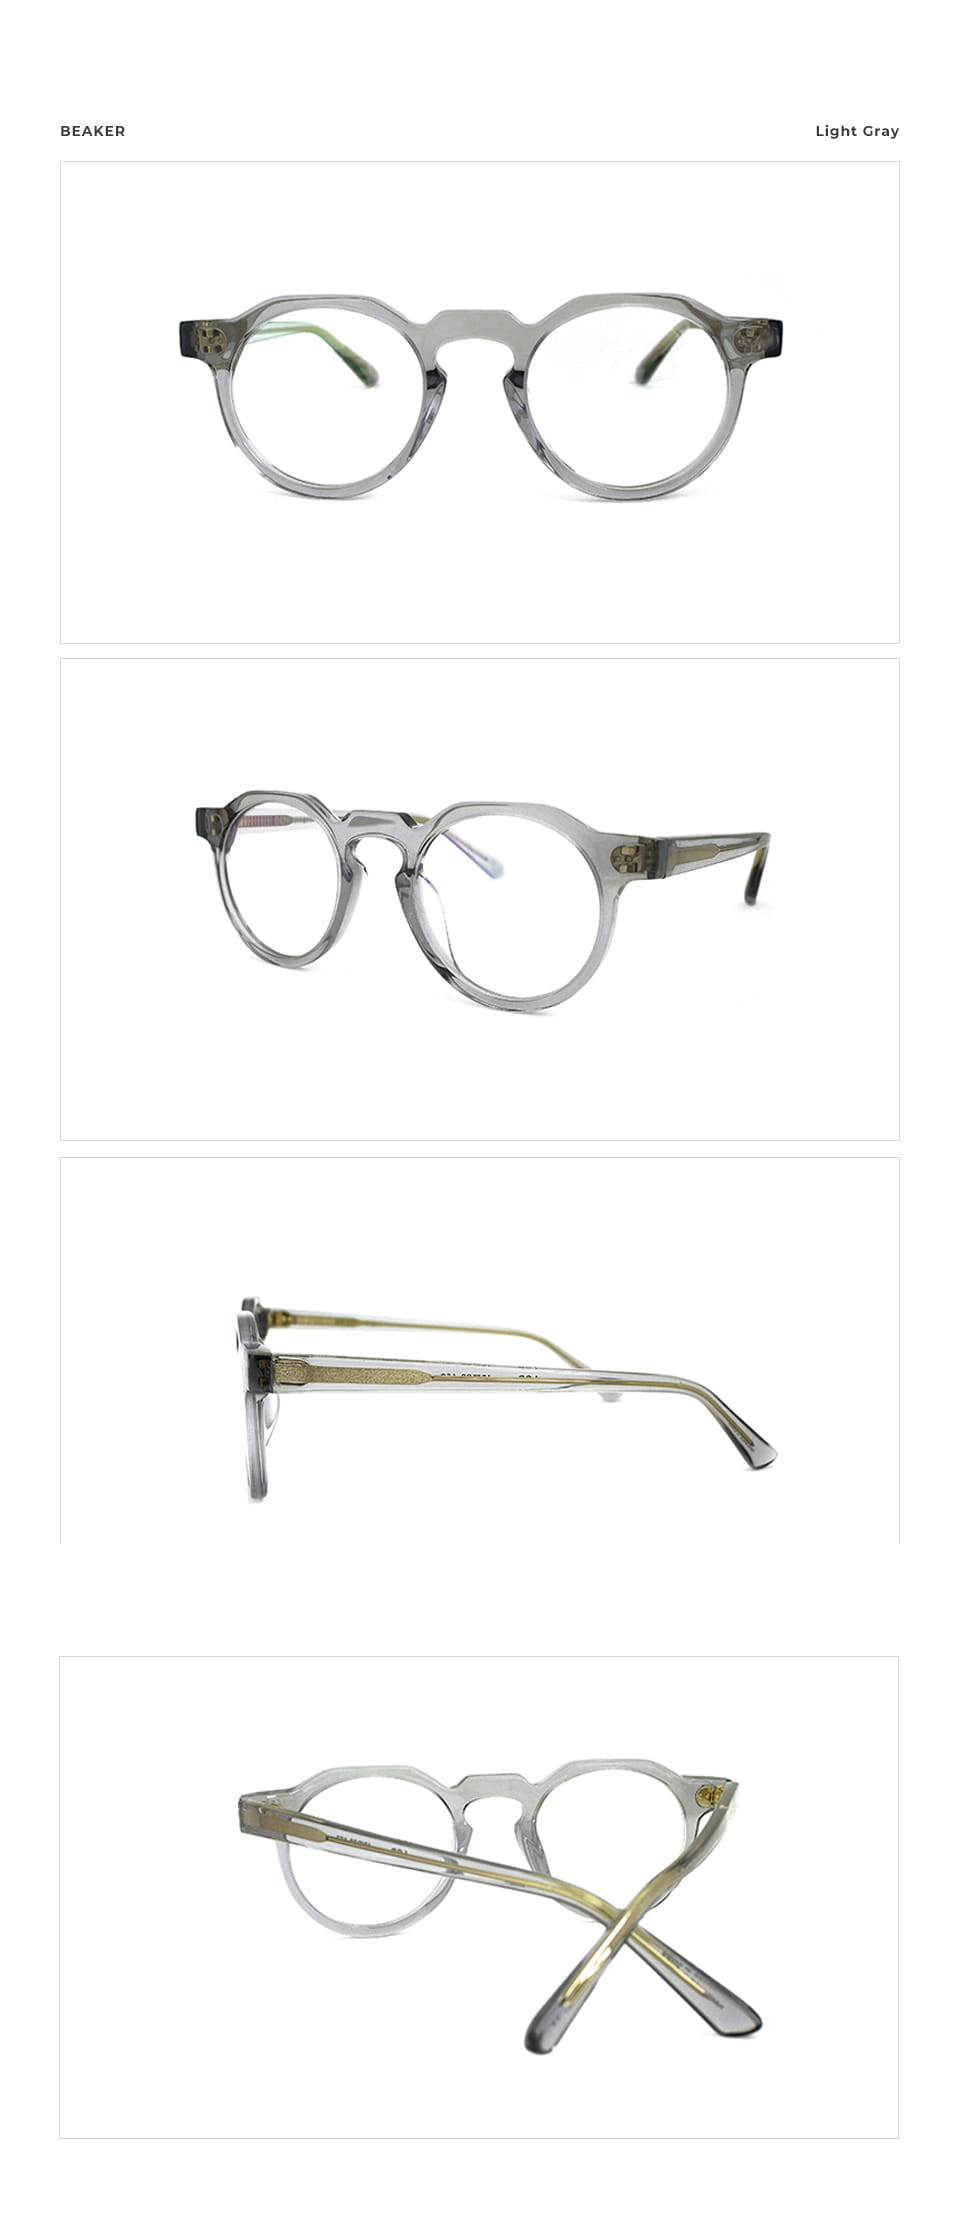 벤시몽아이웨어(BENSIMON EYEWEAR) BENSIMON BEAKER Light Gray